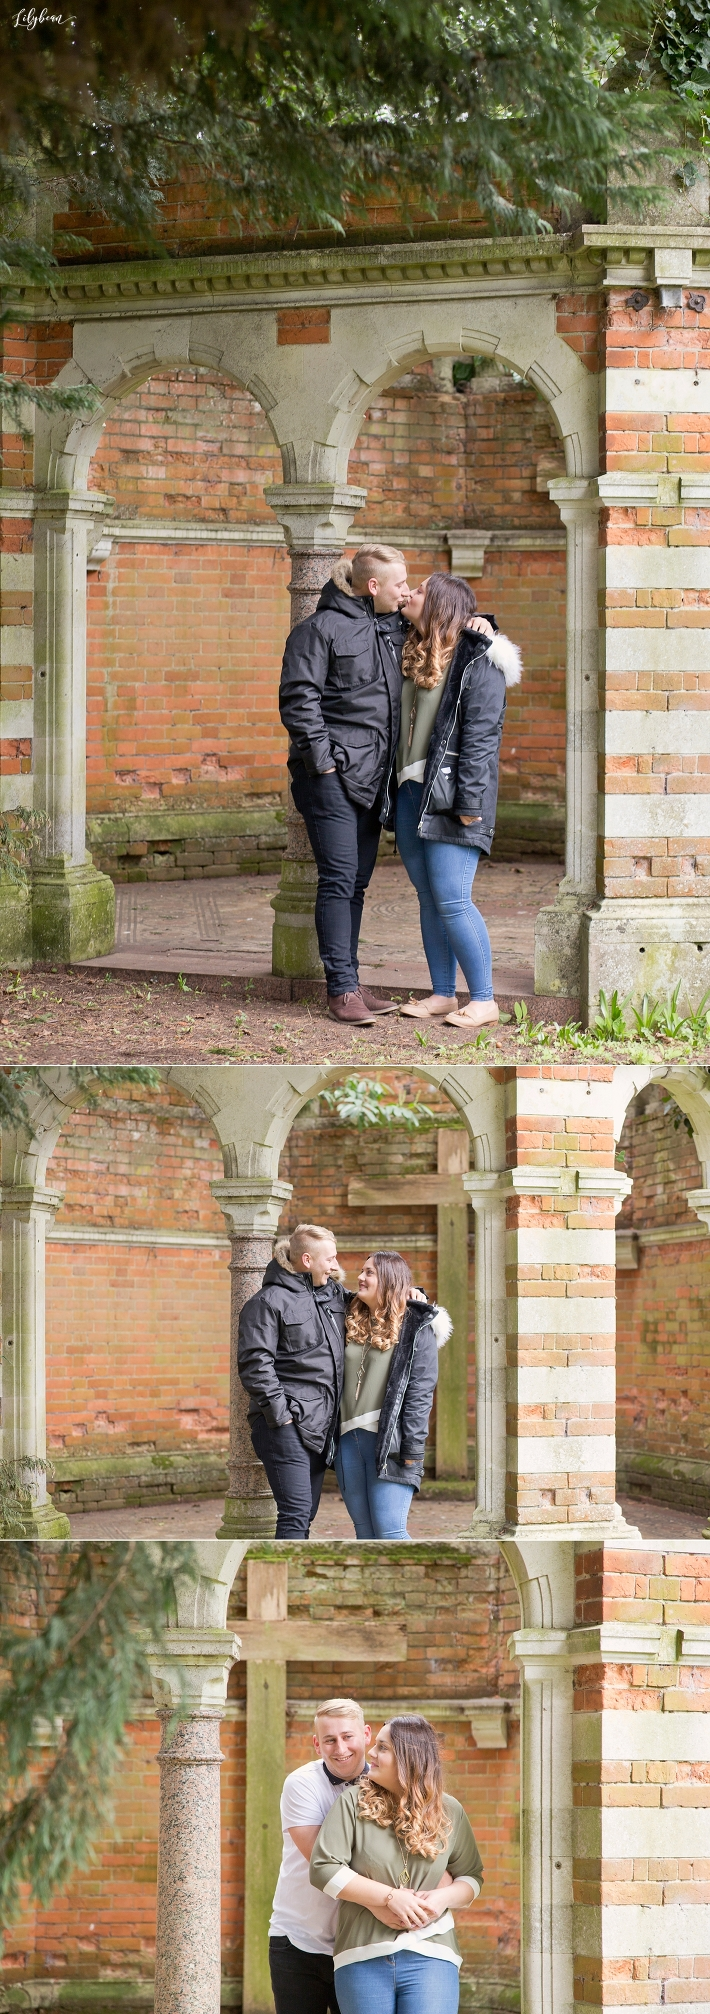 Couple kissing and together at The Tudor Barn